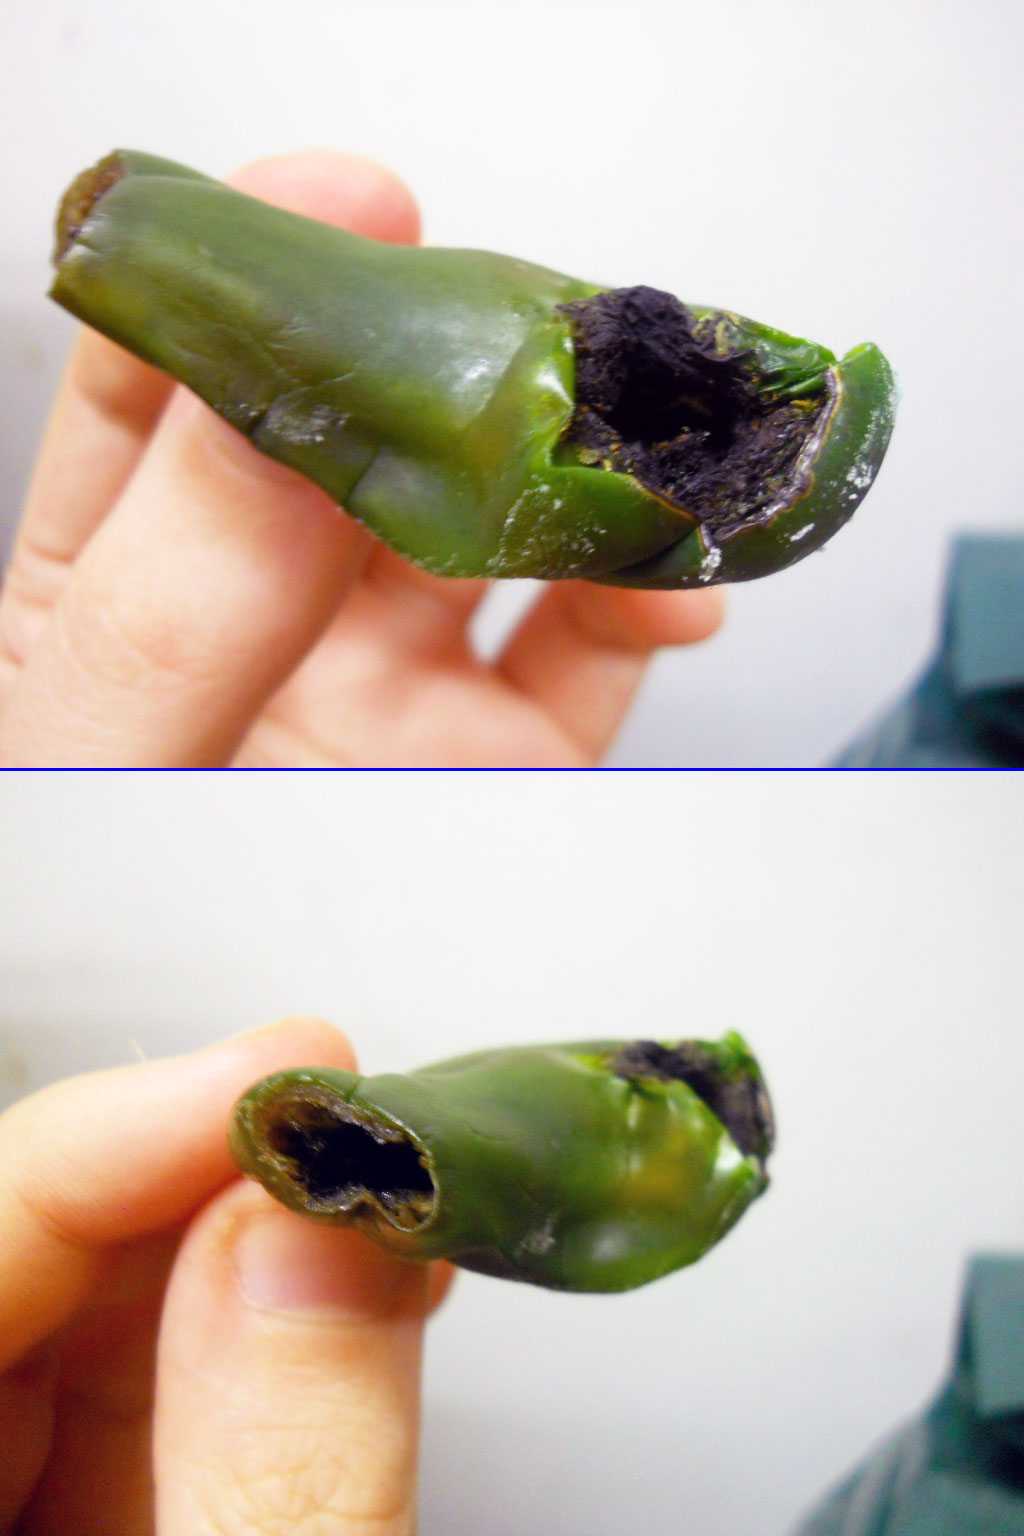 jalapeno_pipe_rotten